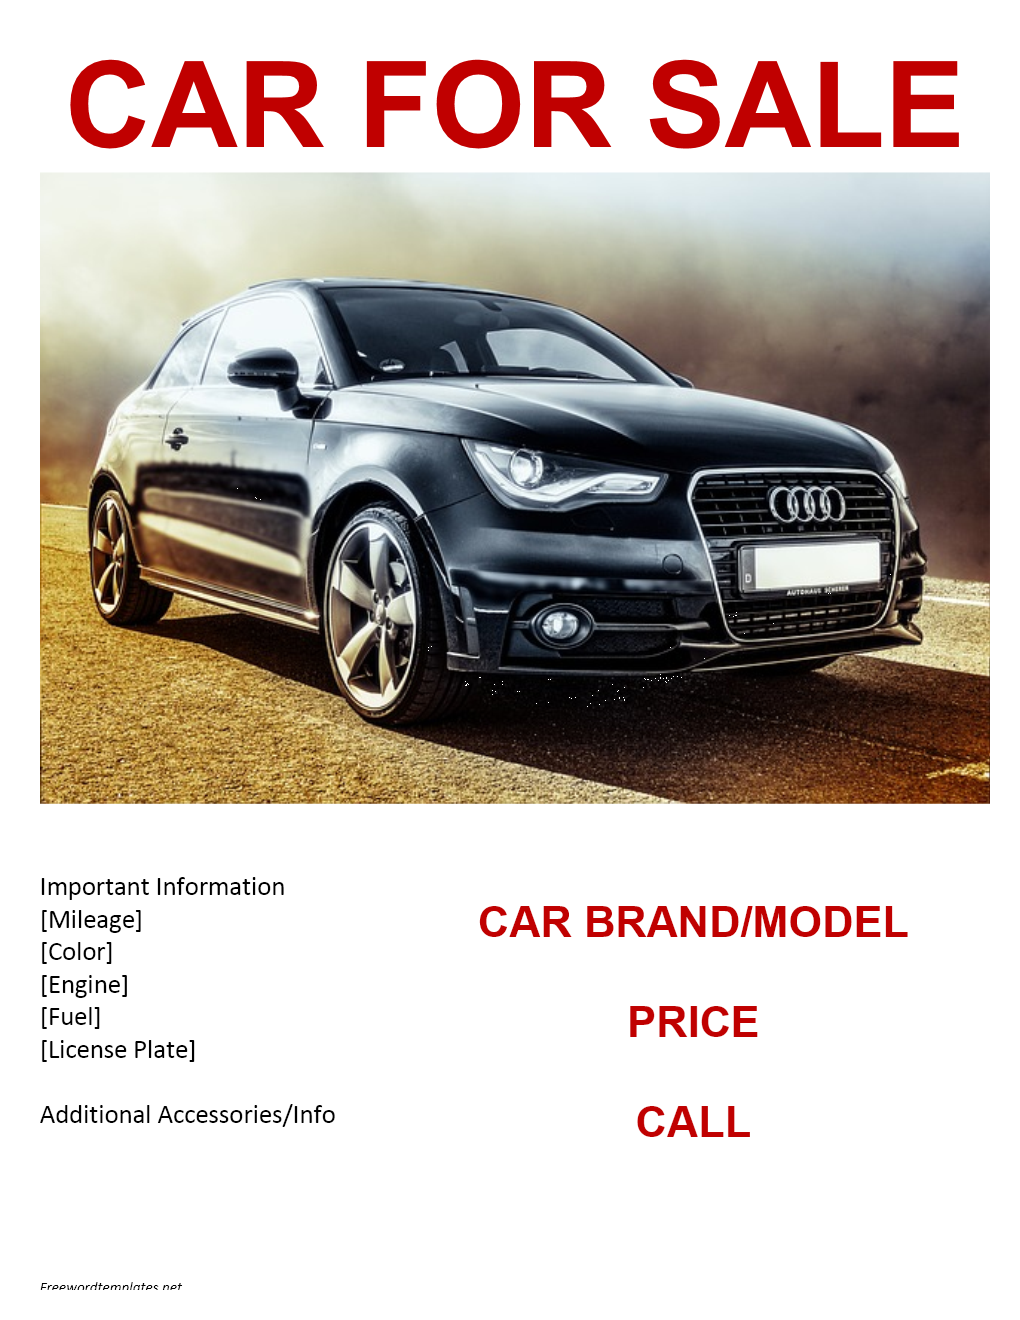 New Used Cars for Sale Dealership | used cars